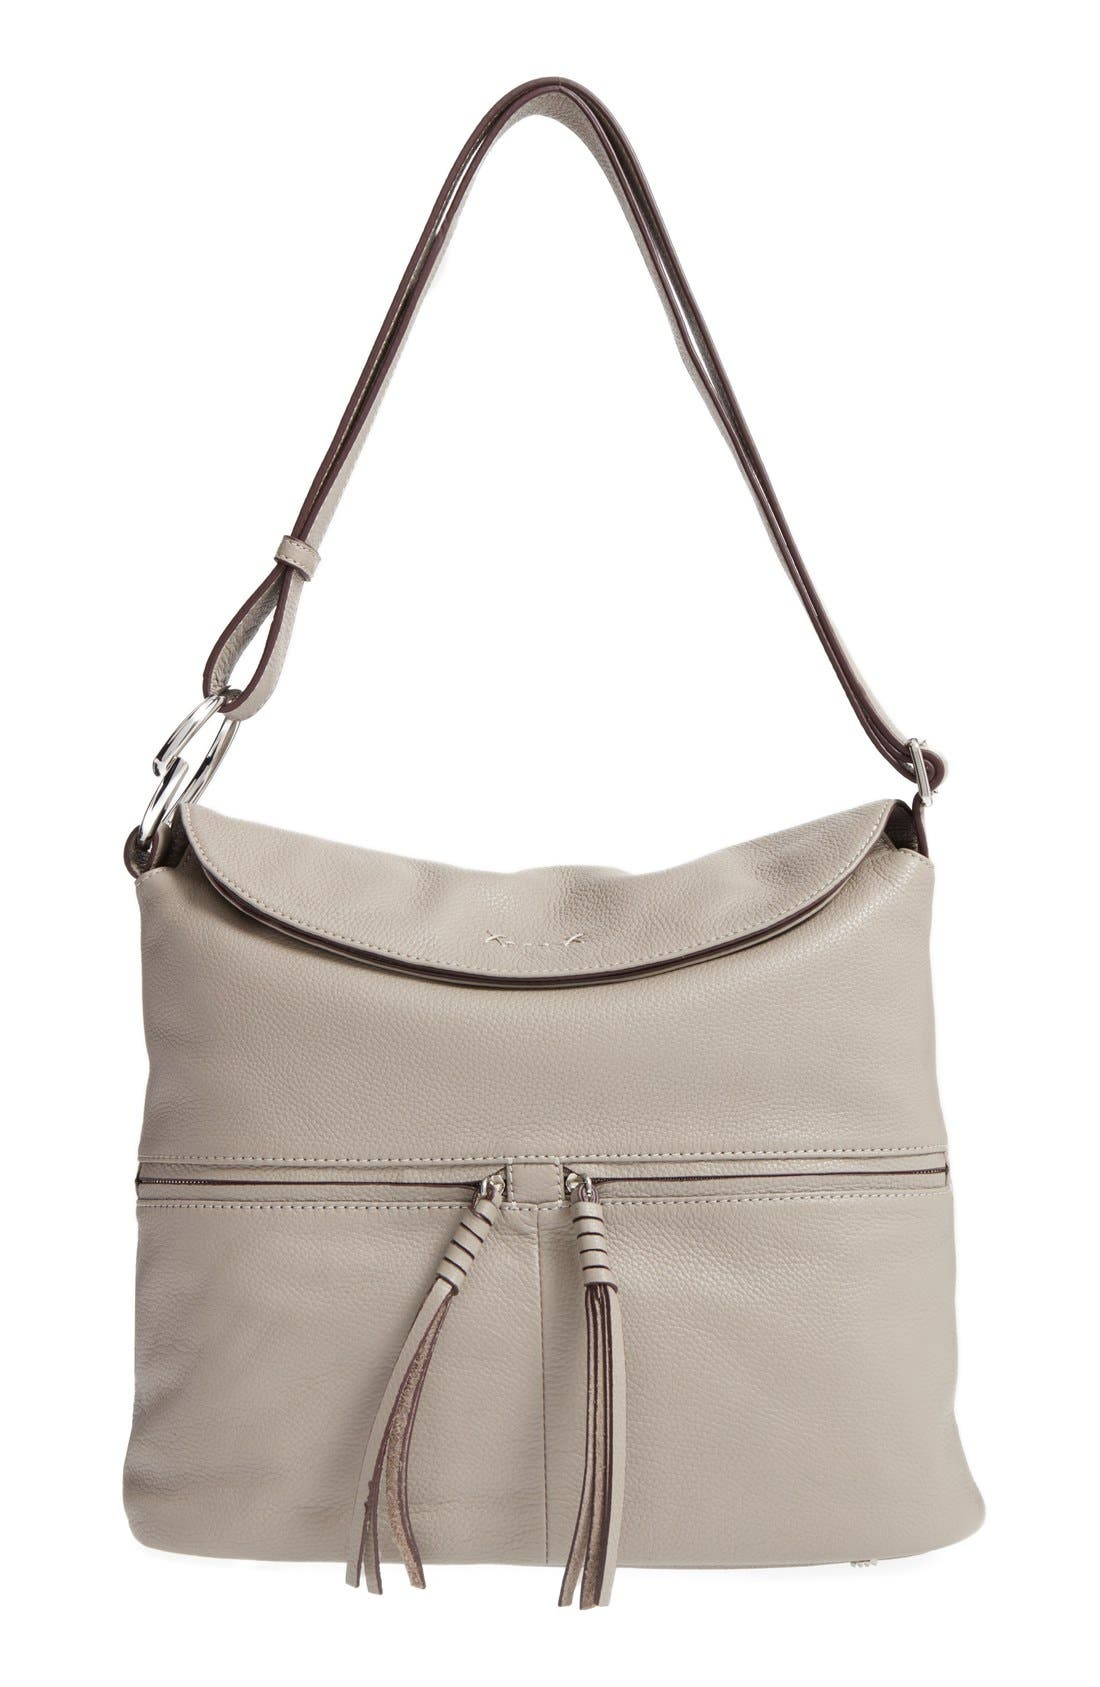 Elizabeth and James Finley Leather Hobo Bag